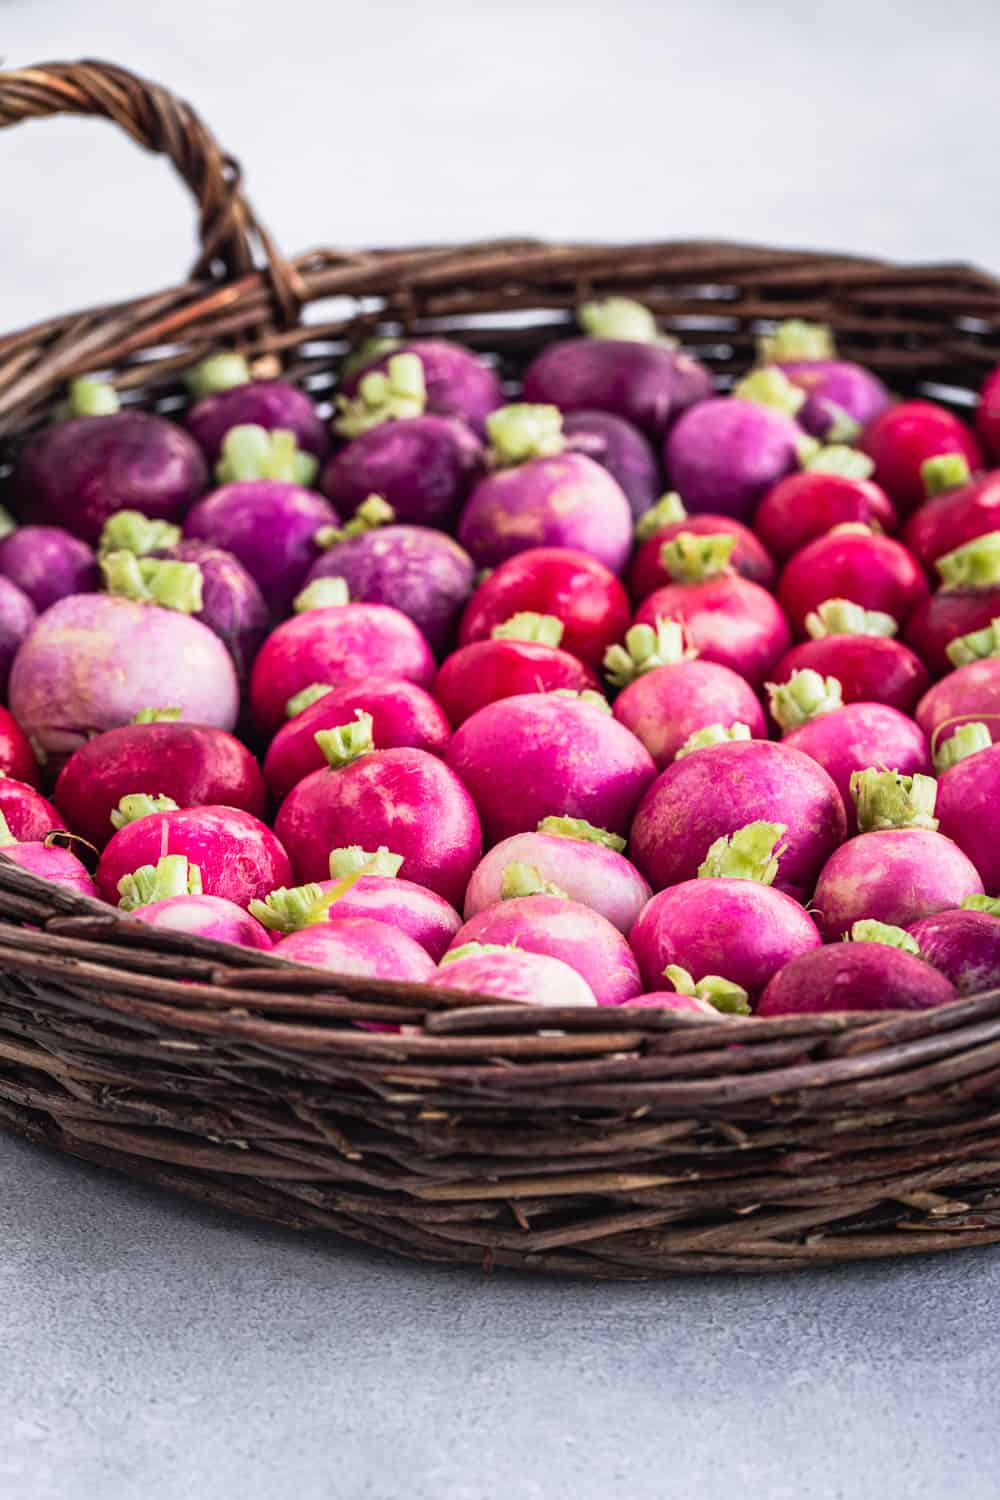 side angle shot of pink, red and purple round radishes in a basked on a light background